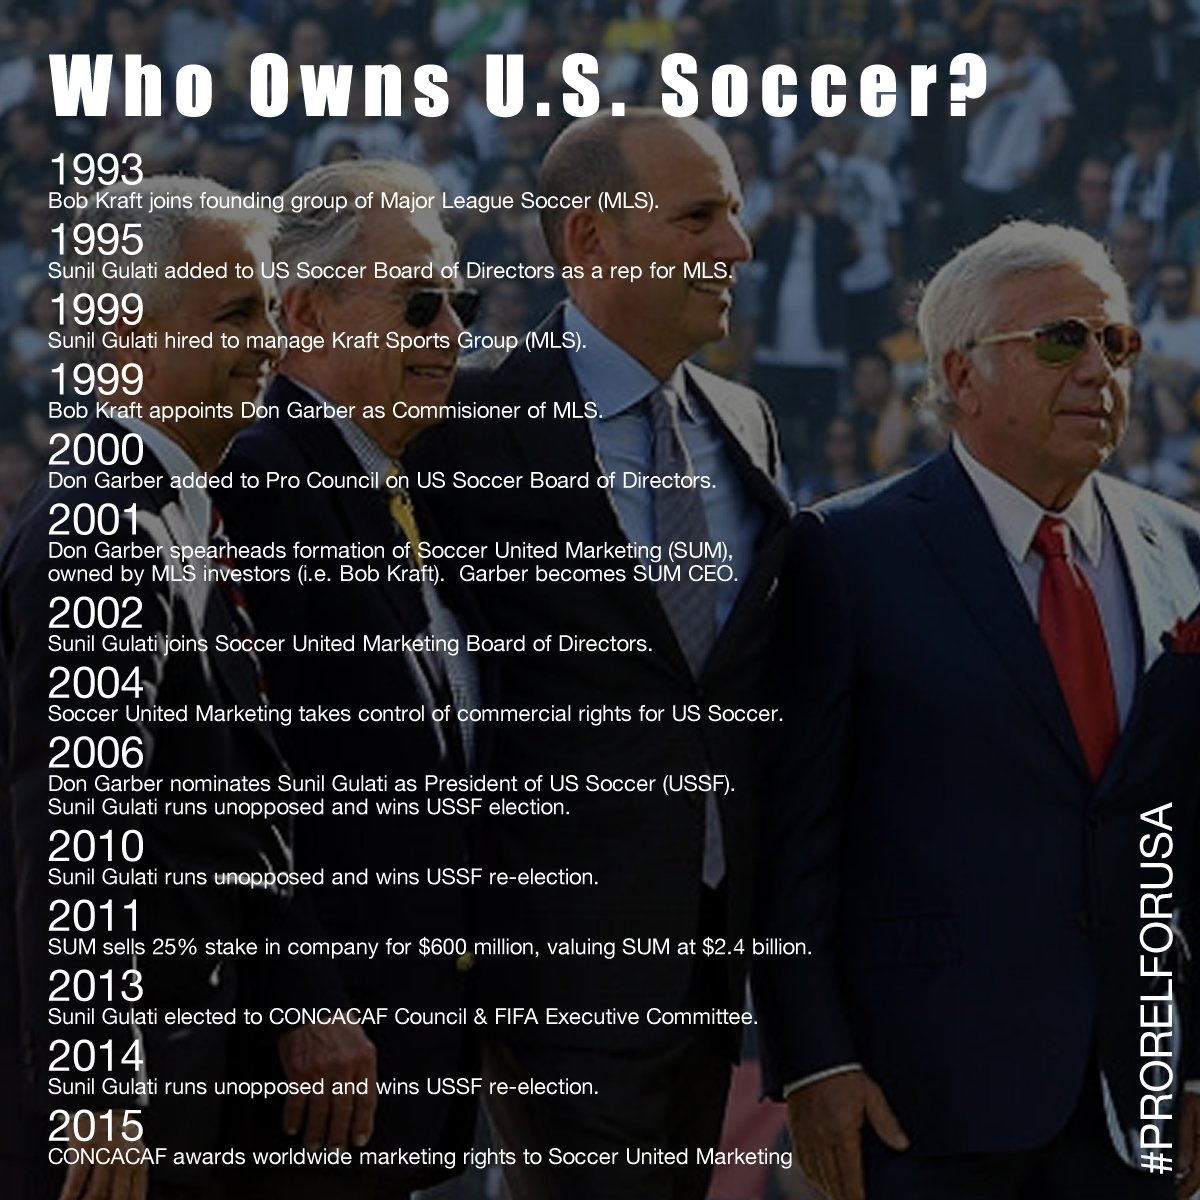 Who really owns @ussoccer?  #FIFA #CONCACAF #NFL #SUM #MLS #USMNT #USWNT #NASL #USL #ProRelForUSA<br>http://pic.twitter.com/nYaK4tFFqL